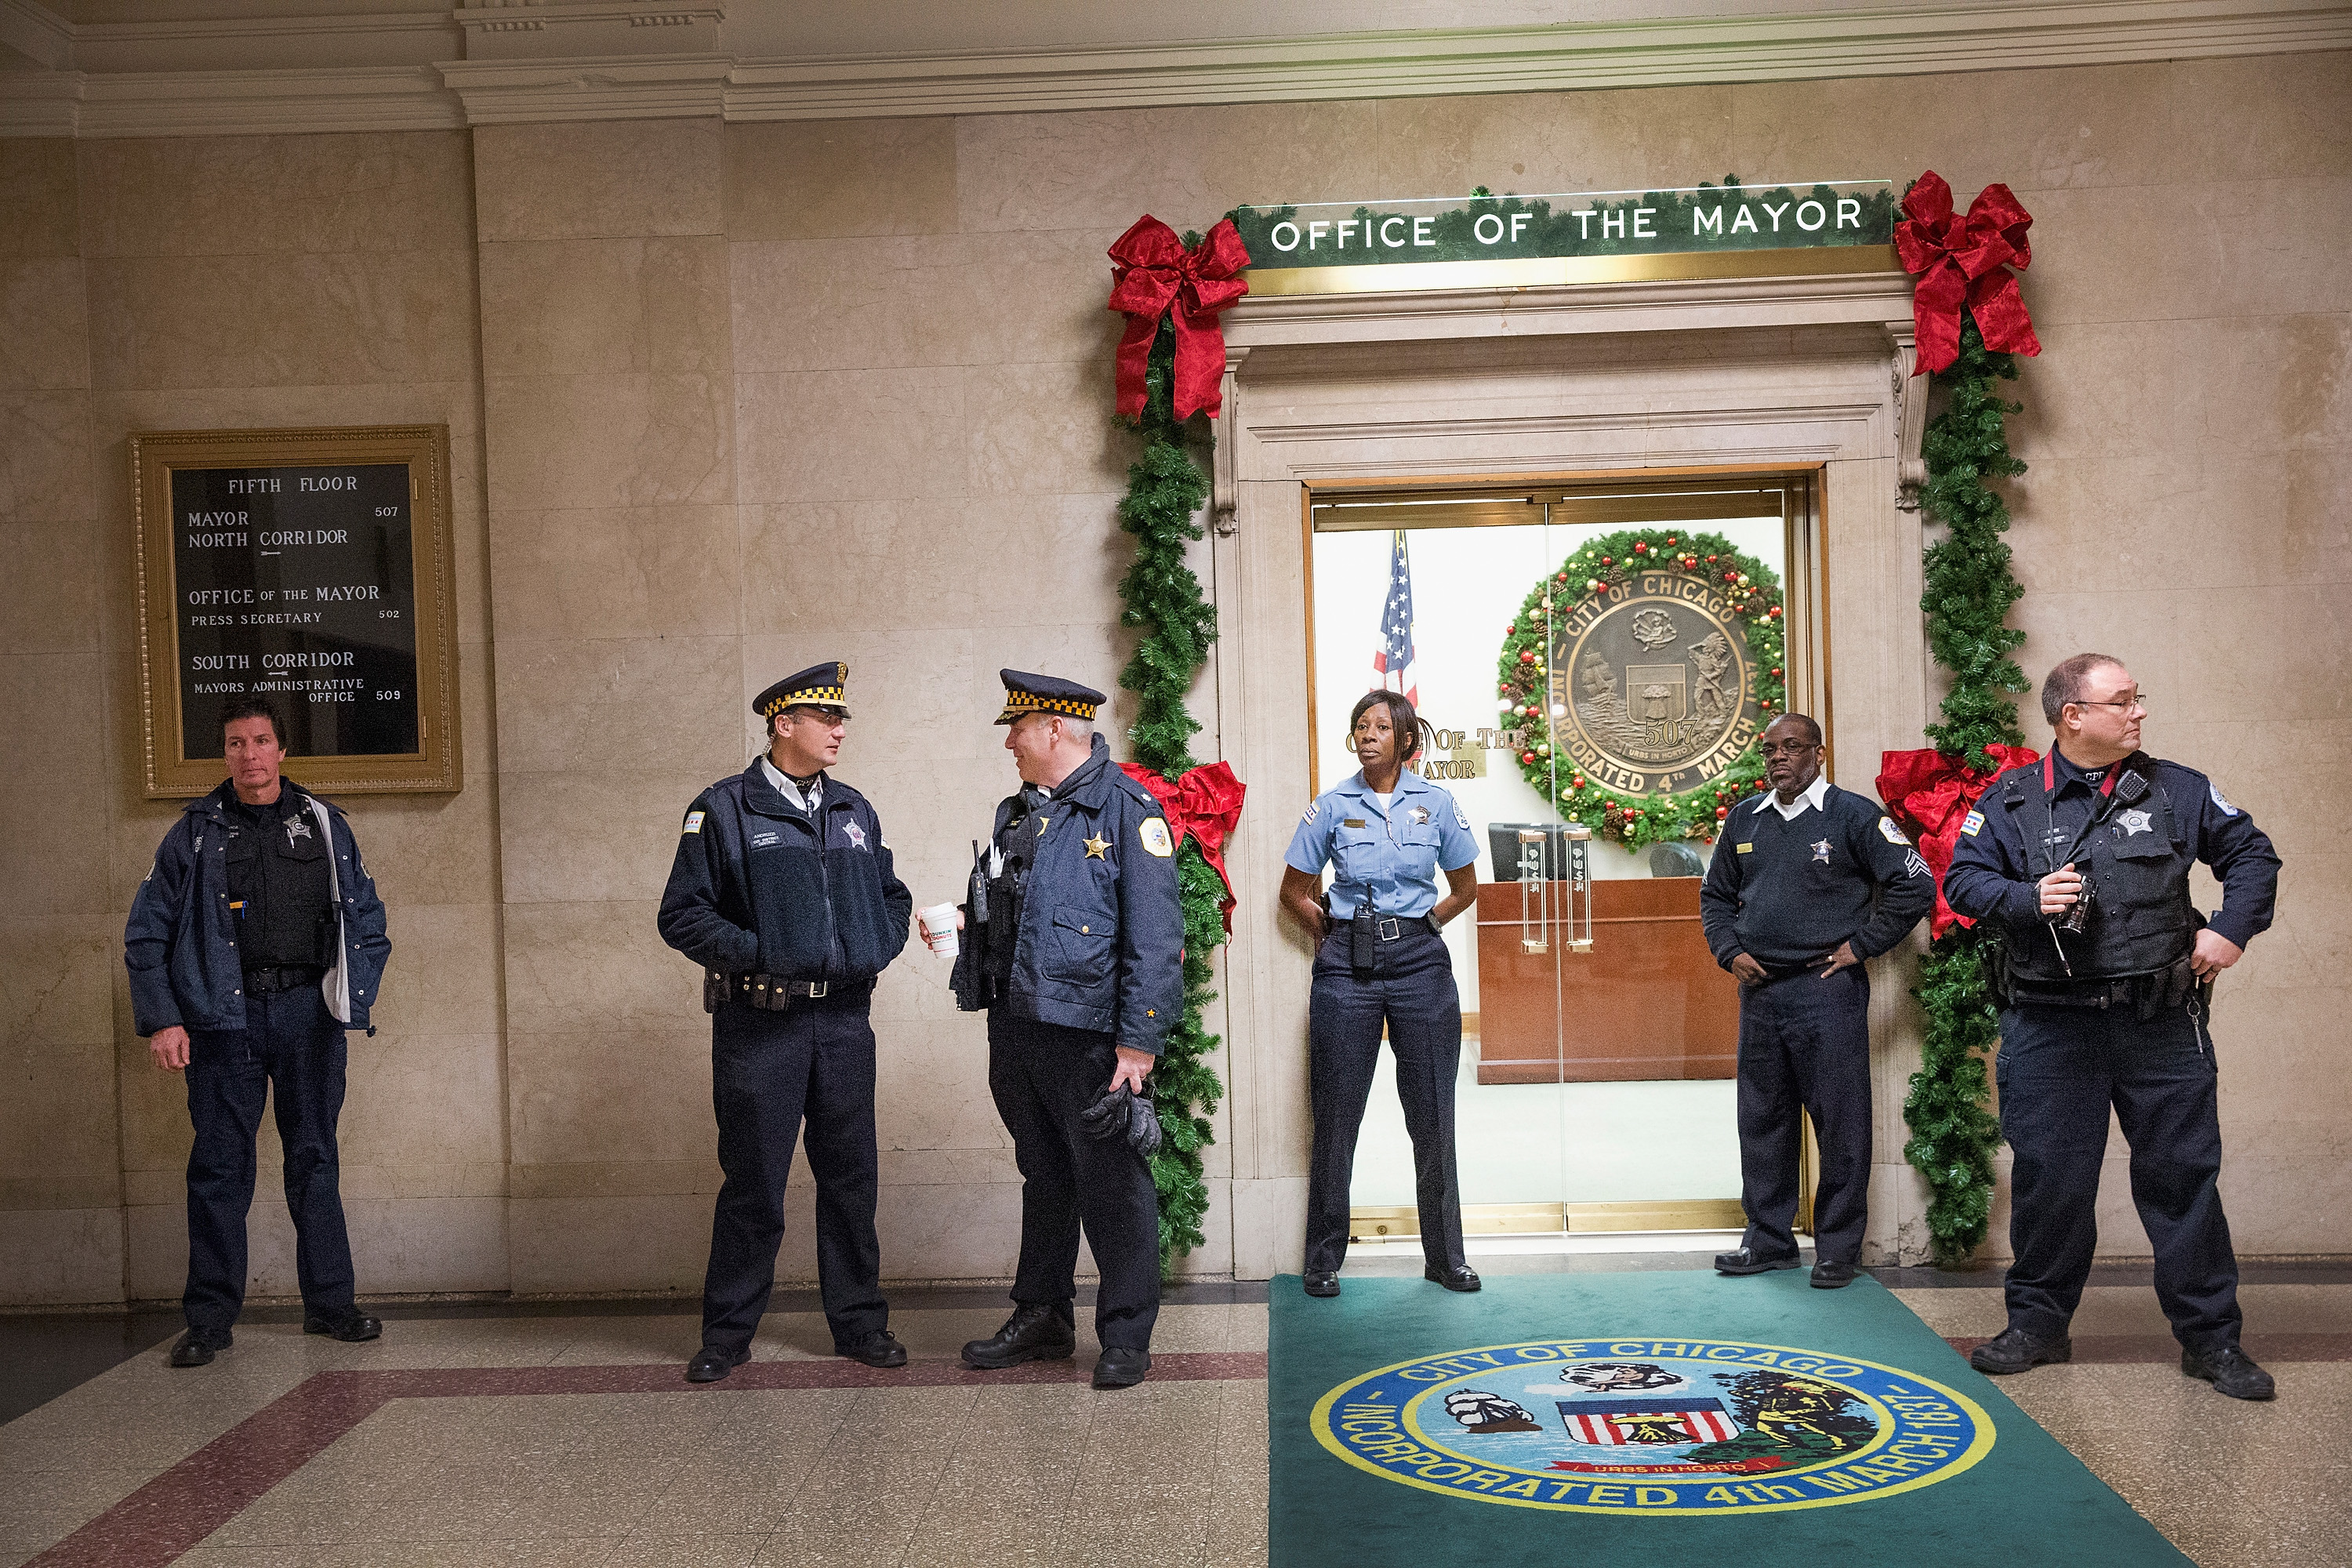 Police guard the entrance to the office of Mayor Rahm Emanuel as demonstrators calling for his resignation protest nearby on December 31, 2015 in Chicago, Illinois. The shooting deaths by police of a 19-year-old college student Quintonio LeGrier and his 55-year-old neighbor Bettie Jones and a recently released video showing the shooting of 17-year-old Laquan McDonald by Chicago Police officer Jason Van Dyke have sparked dozens of protests in the city. Yesterday Emanuel announced several changes that would take place in the police department with the hope of preventing future incidents.  (Photo by Scott Olson/Getty Images)